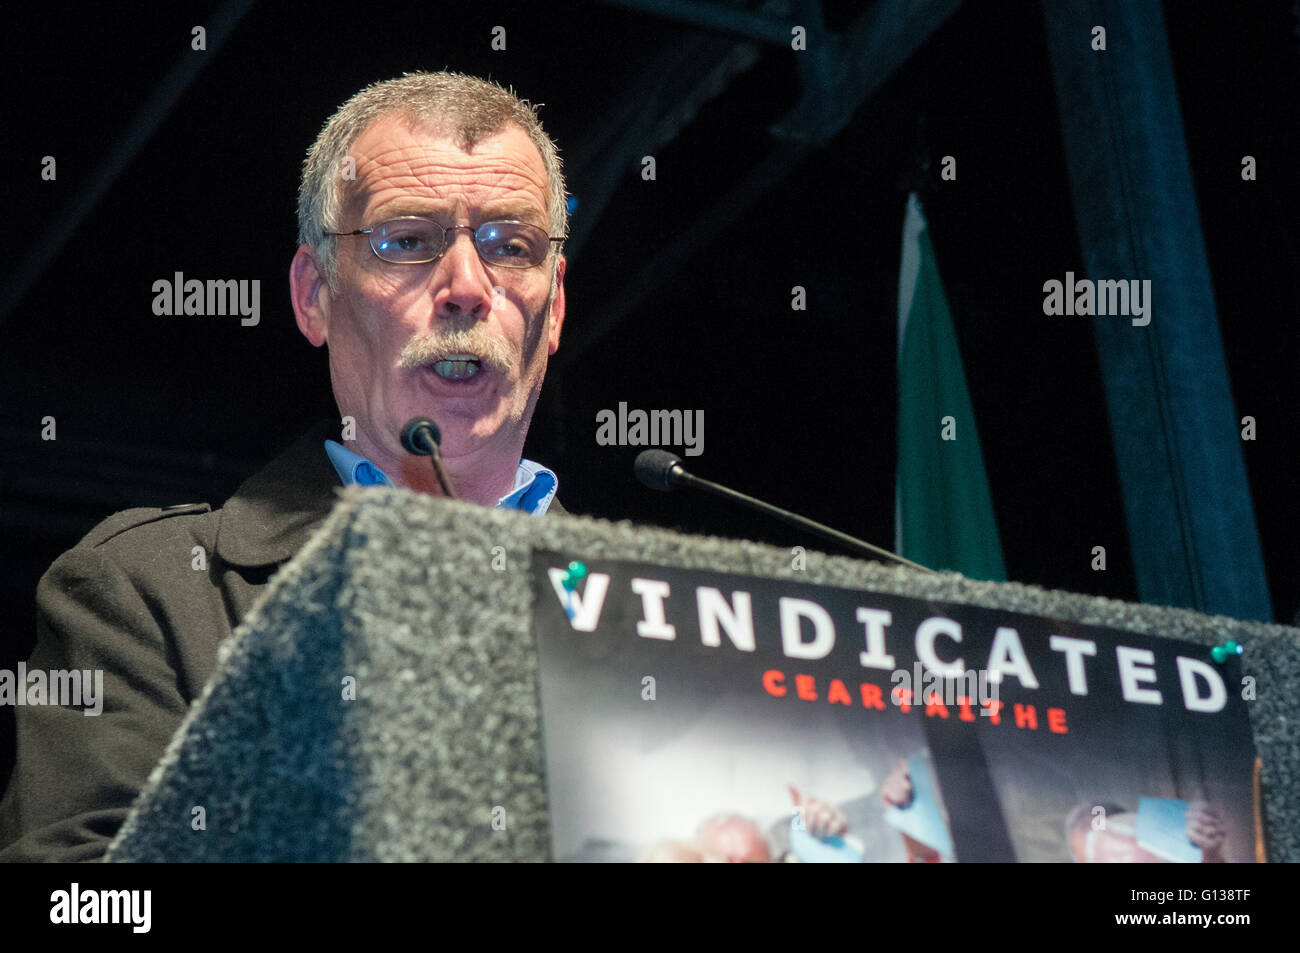 Londonderry. Northern Ireland. 30 Jan 2011 - Frankie Duddy, whose brother Jackie was one of the victims of Bloody - Stock Image